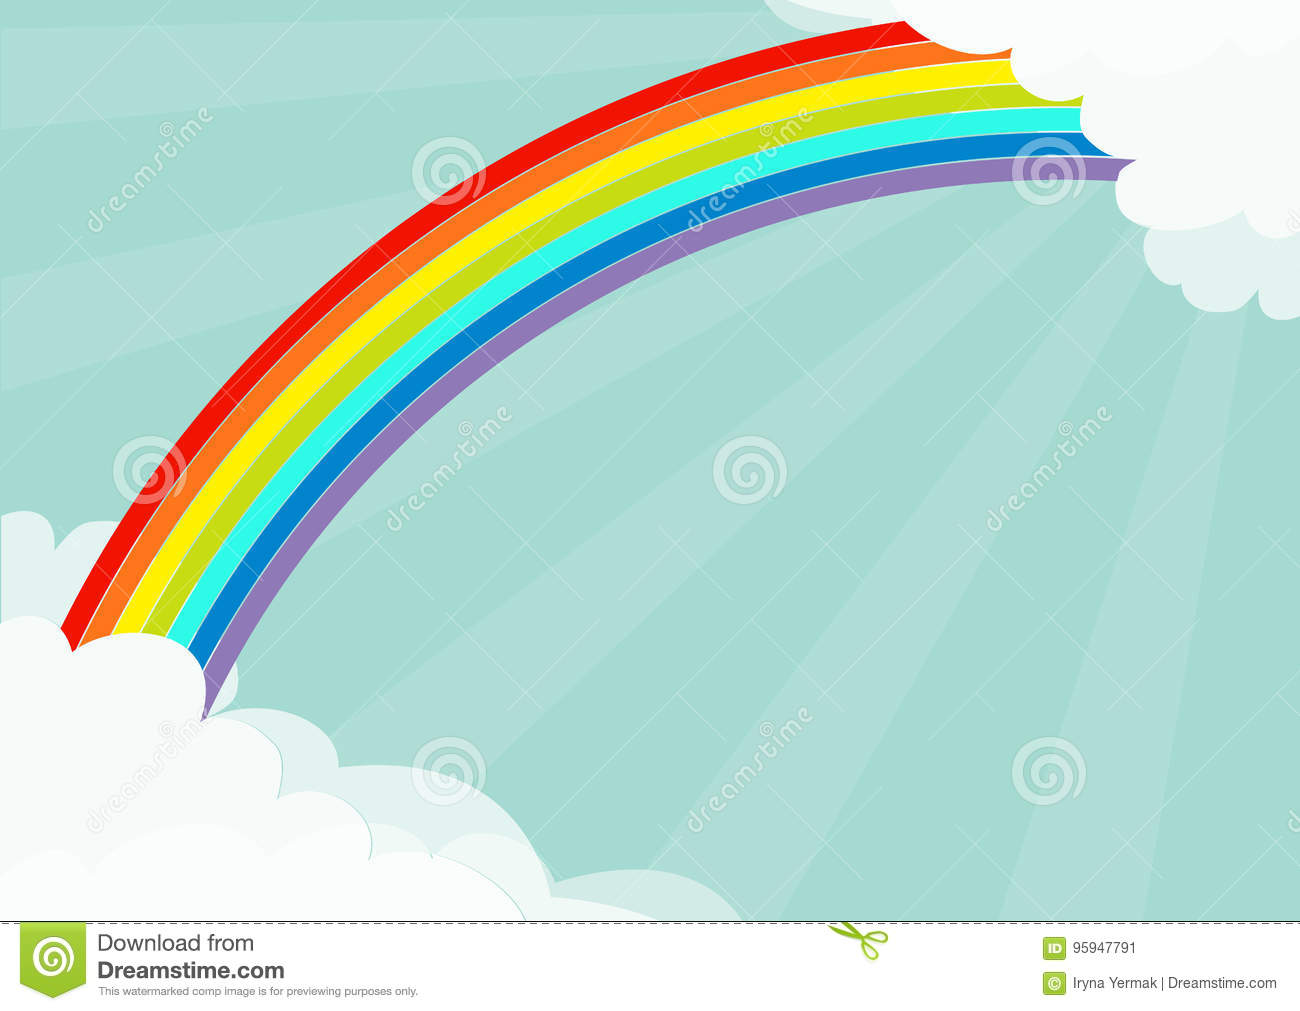 Fluffy cloud in corners frame template. Rainbow in the sky. Cloudshape. Sun light rays burst. Sunshine. Cloudy weather. LGBT sign